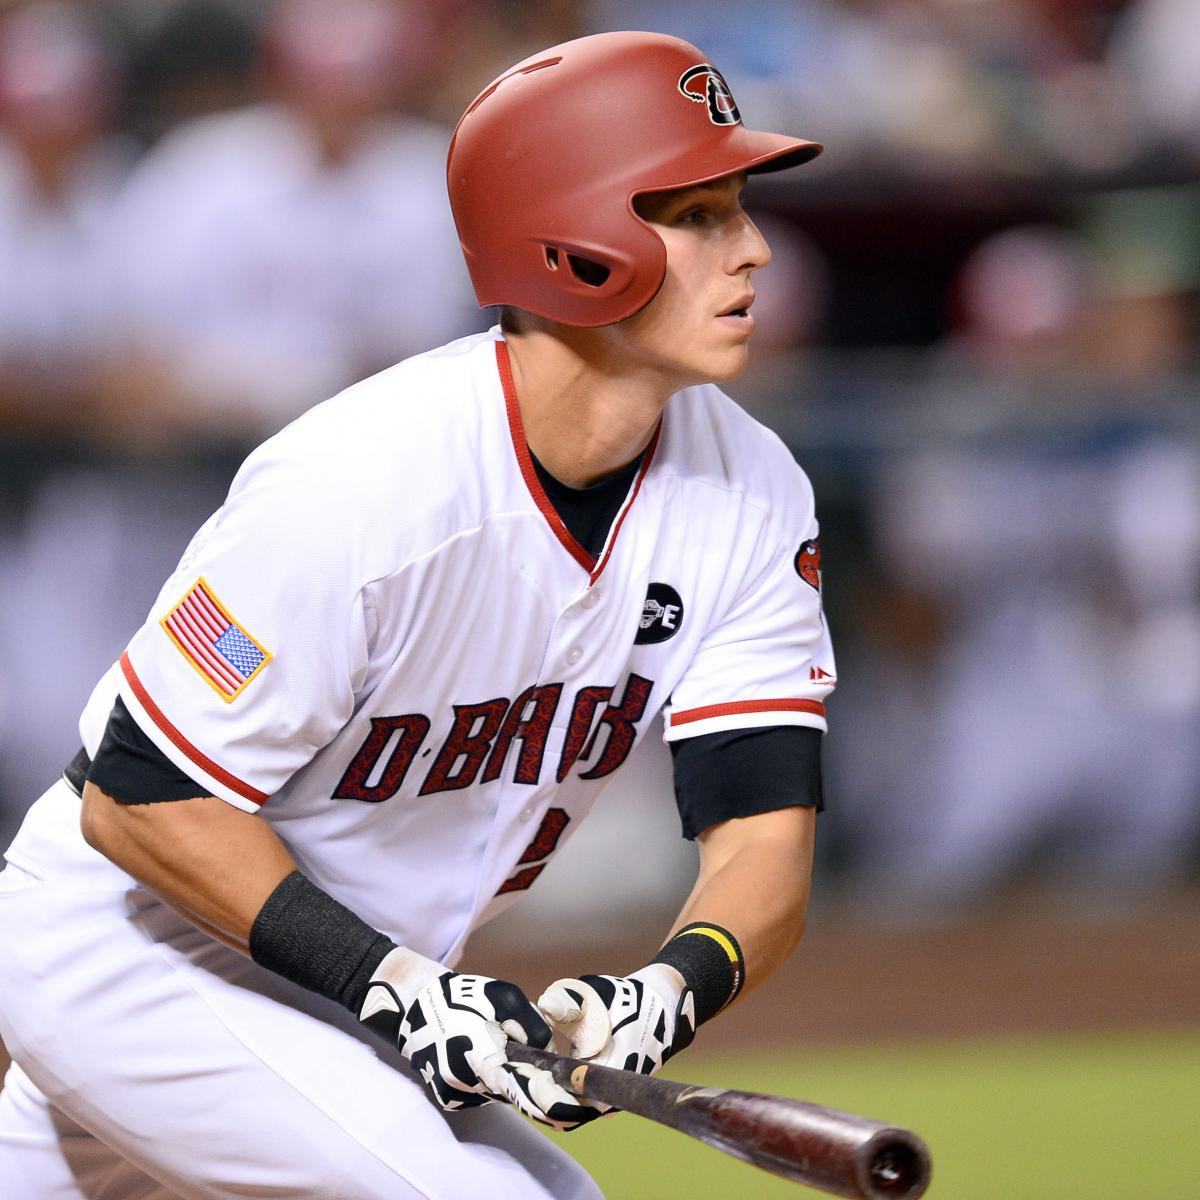 e6f6114cb69 2016 MLB All-Star Roster  Biggest Snubs and Surprises